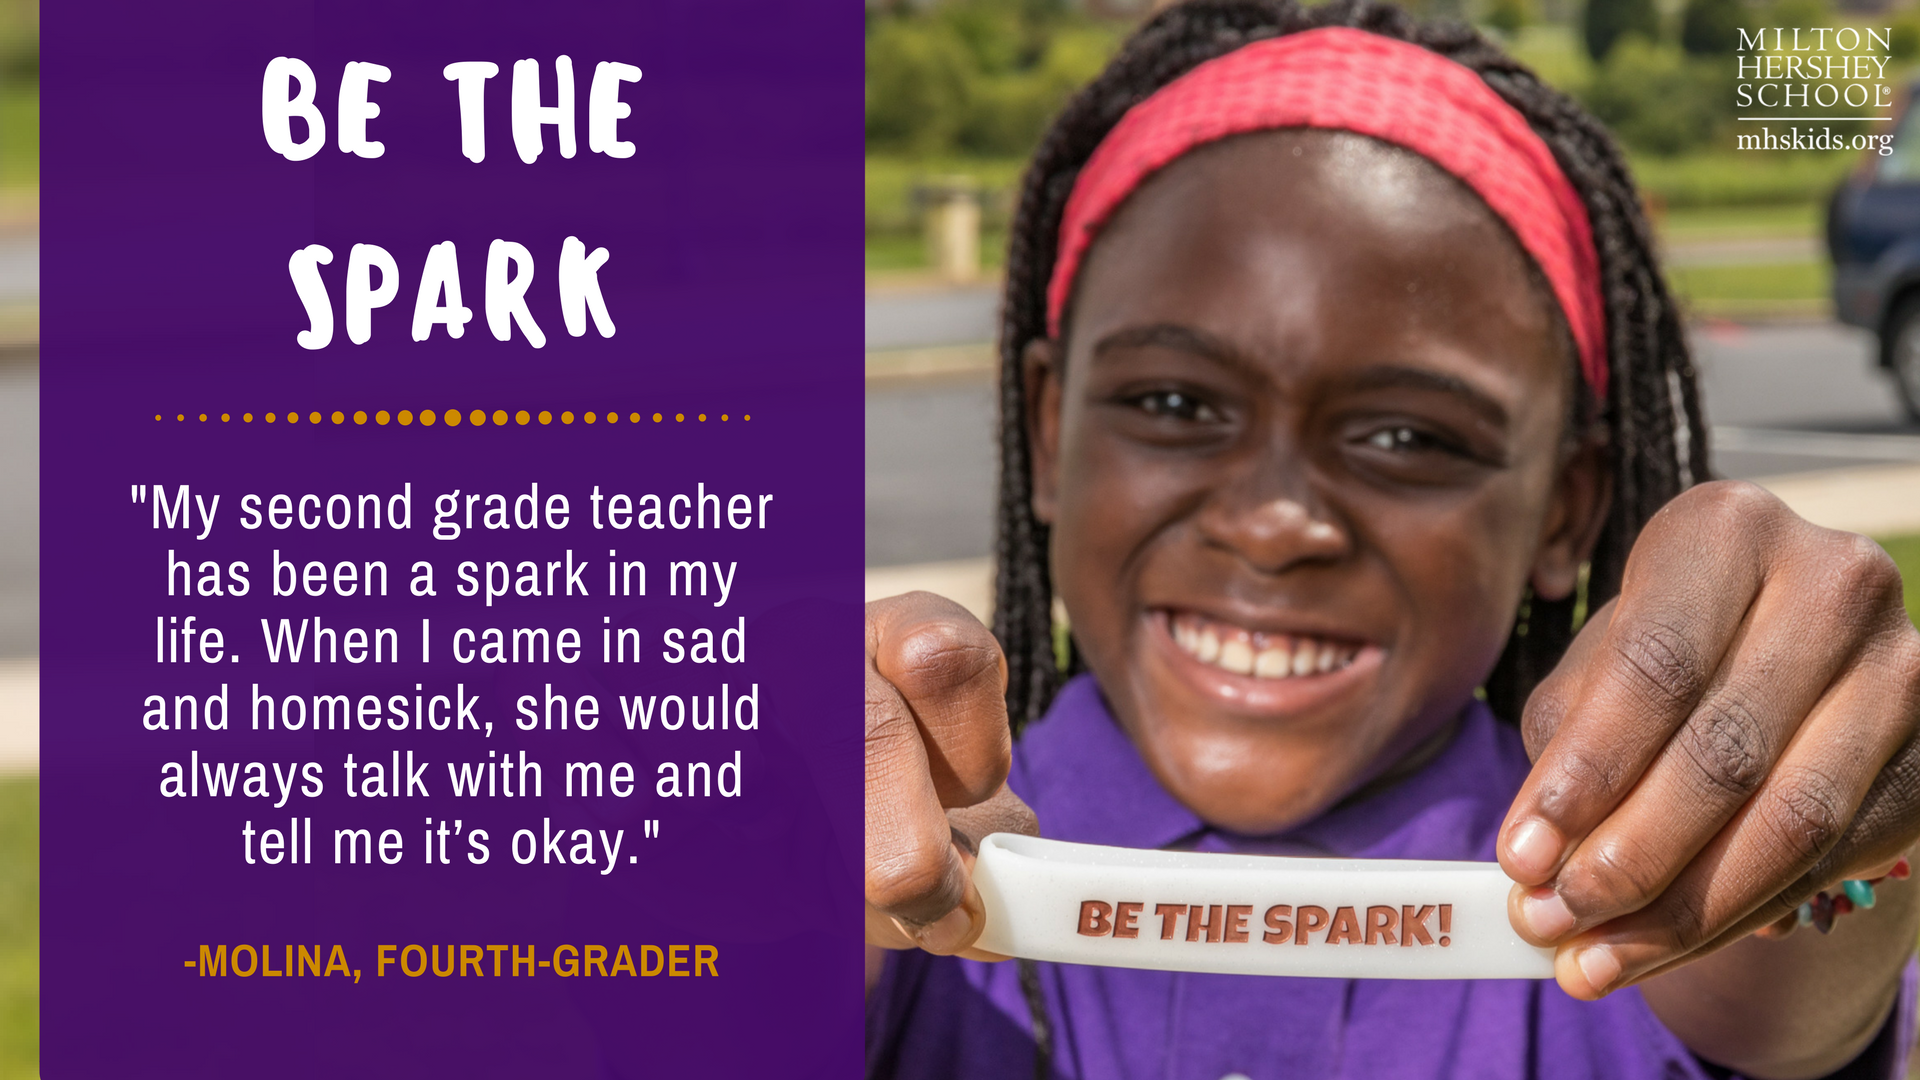 When you live, work, and study in a place that provides continuous support, you have the power to be the spark, find your spark, and share your spark.